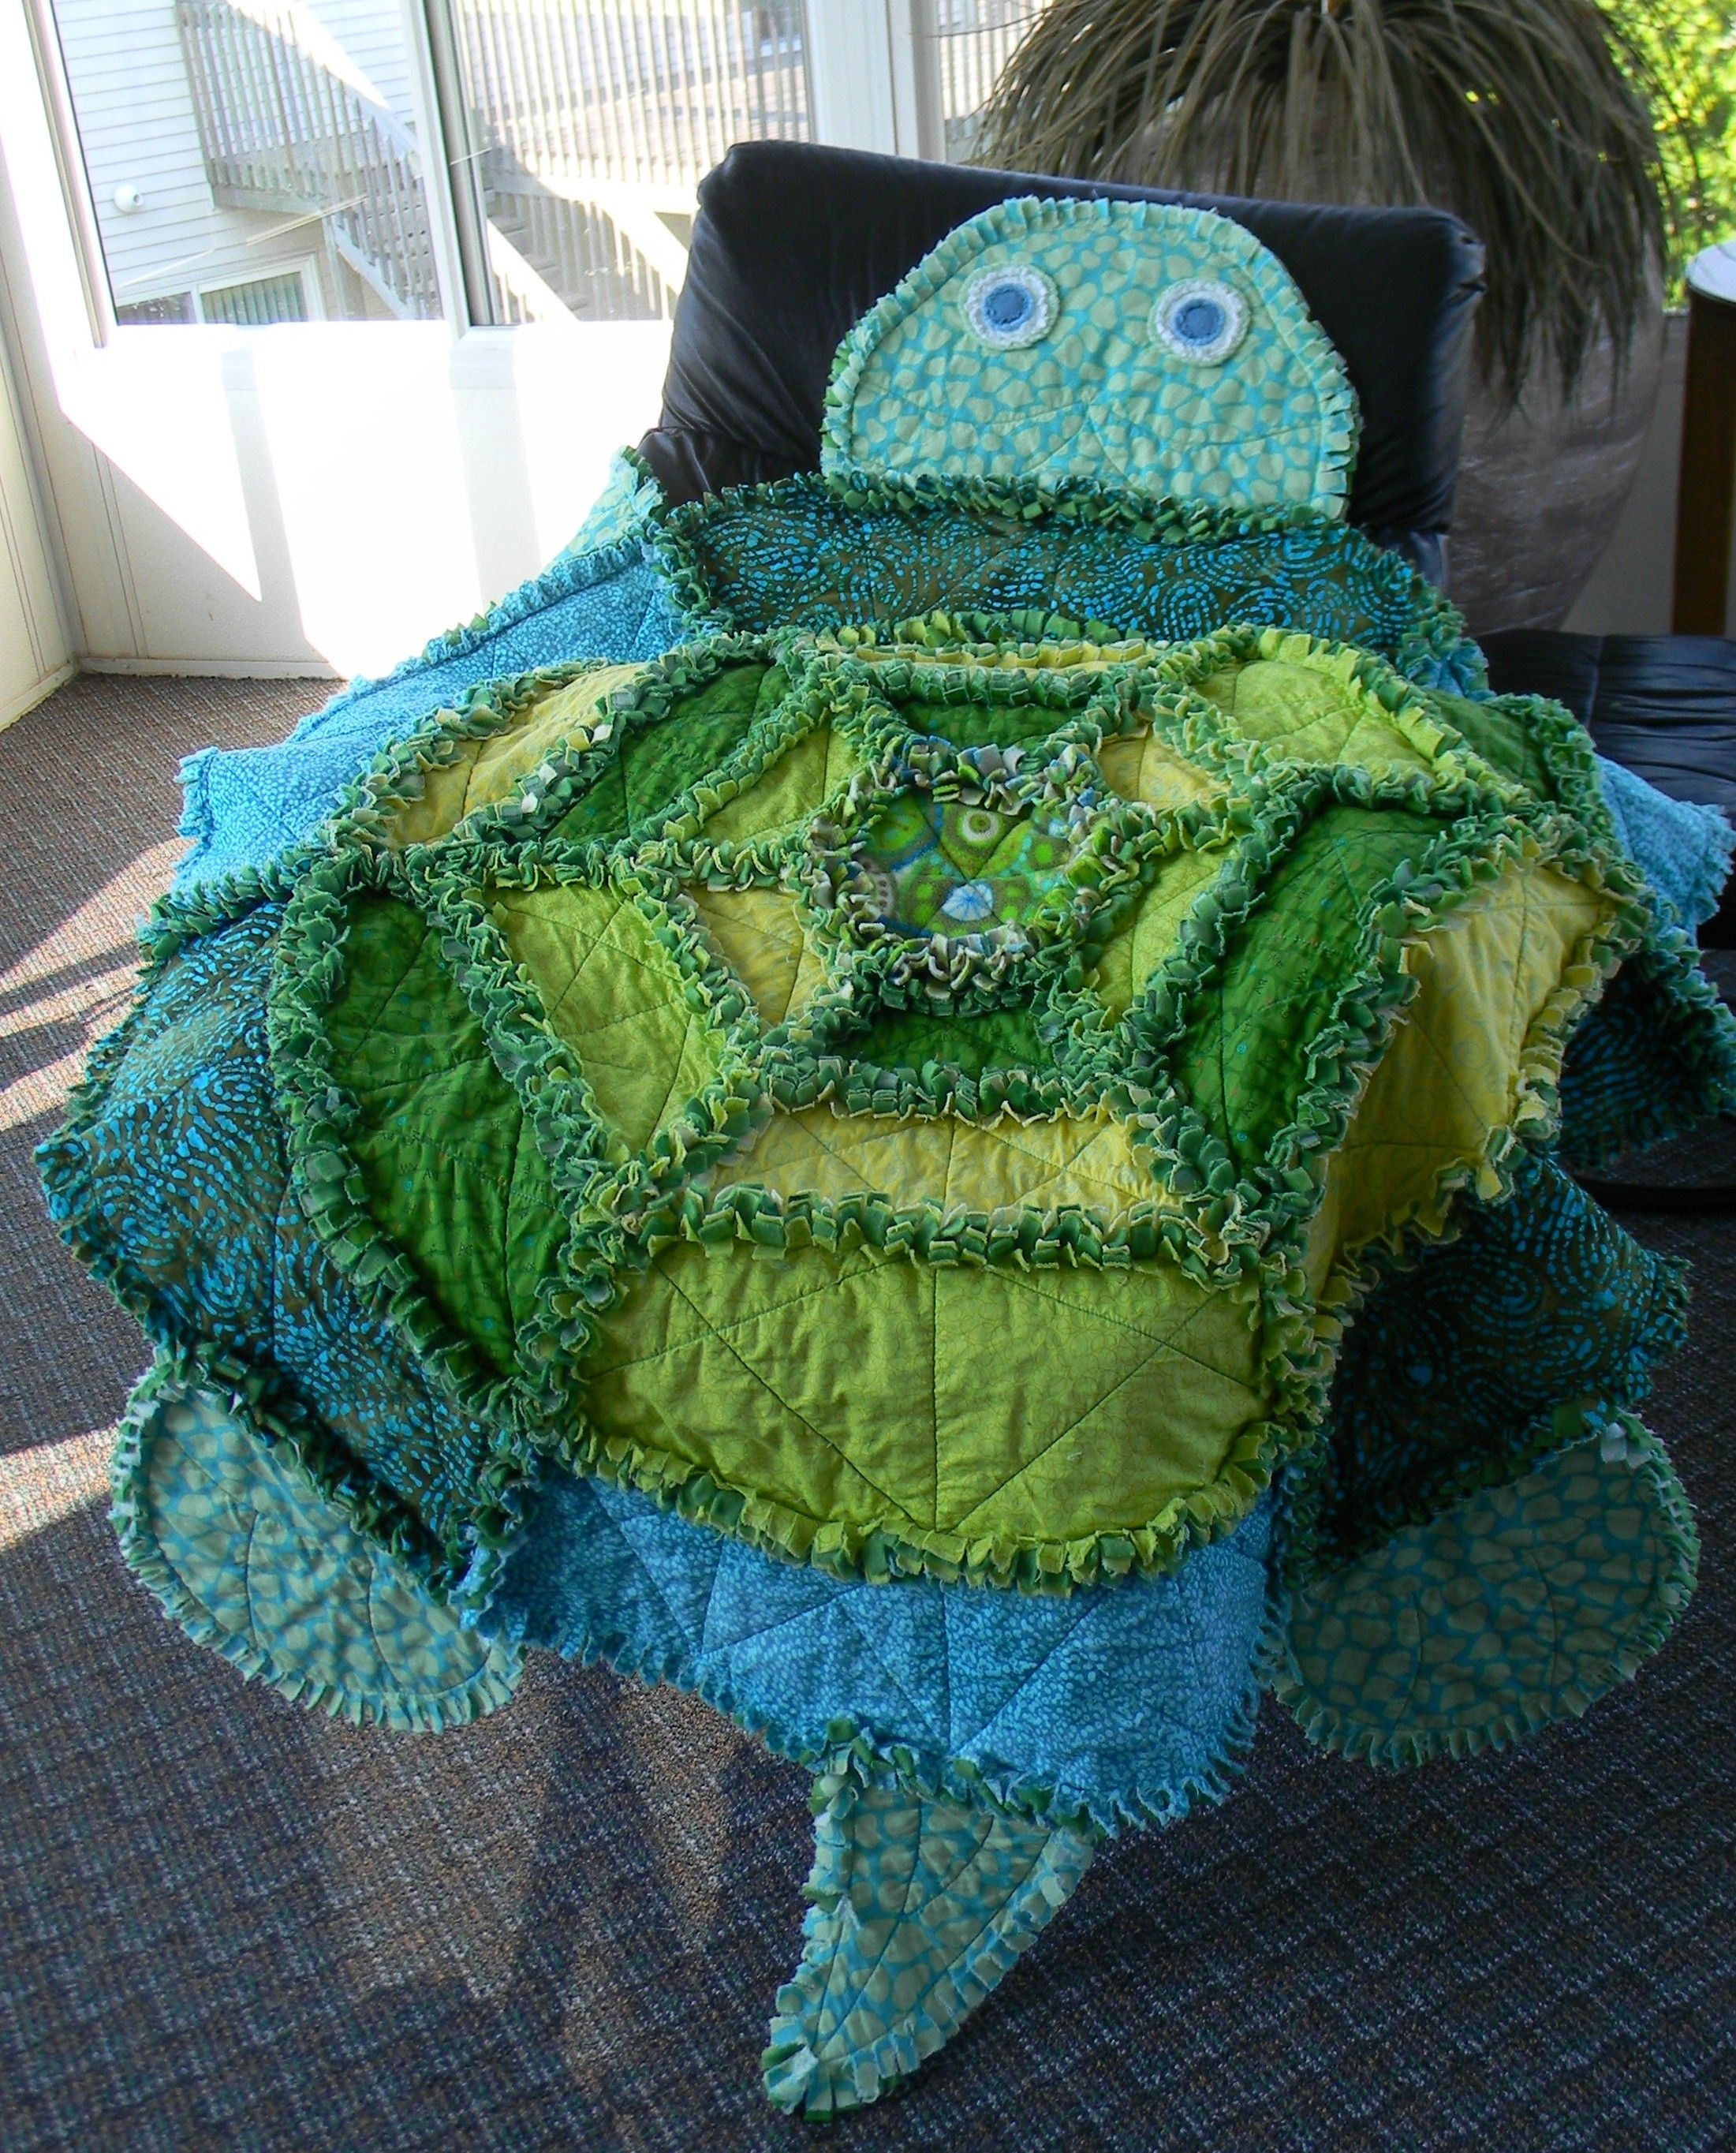 Rag Quilt Animal Patterns : Turtle rag quilt made for Caleb My Projects Pinterest Rag quilt and Turtle